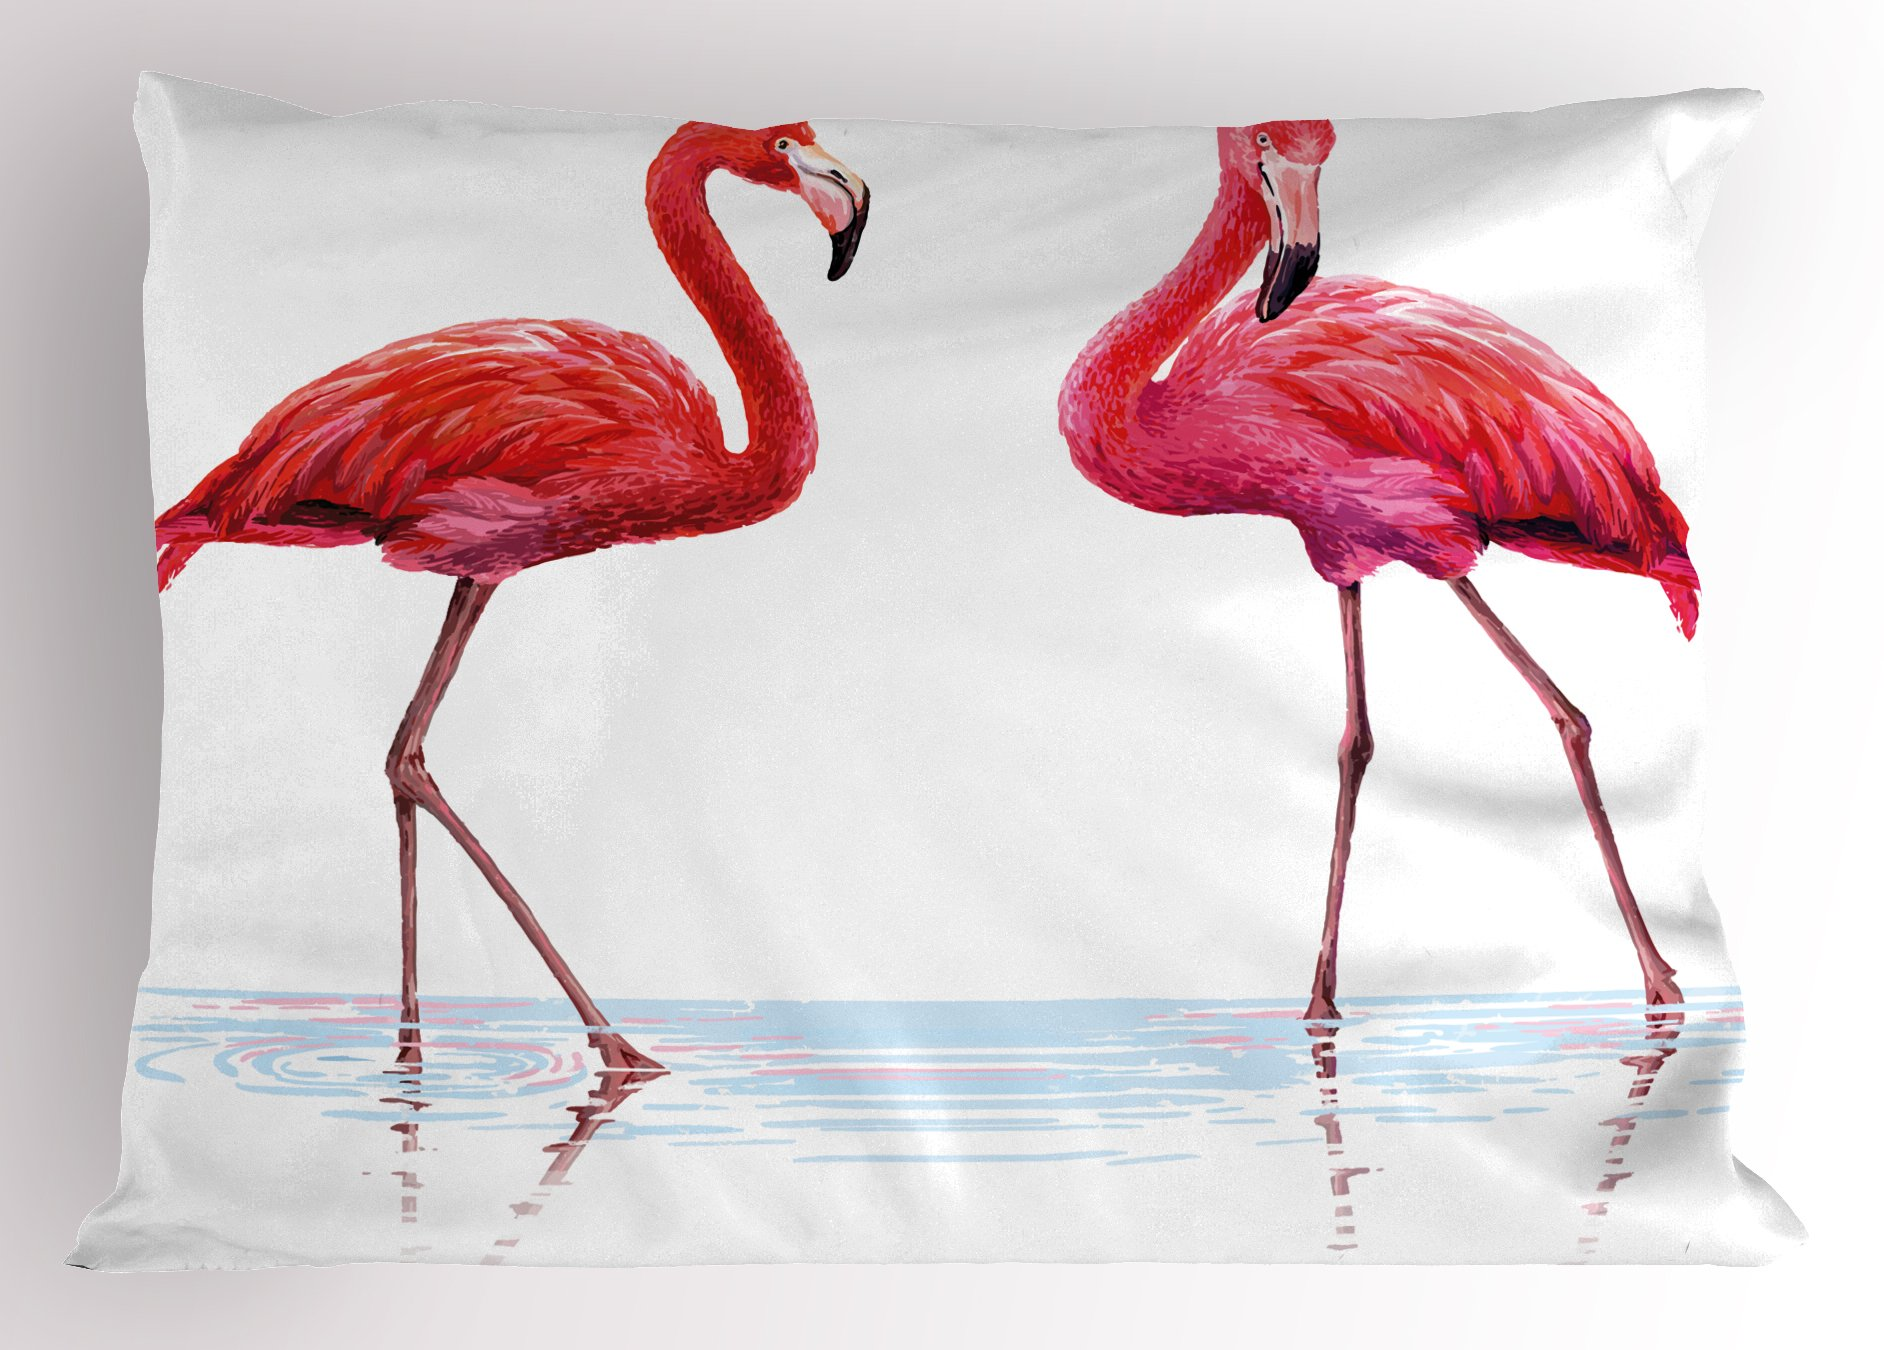 Ambesonne Animal Pillow Sham, Two Hand Drawn Flamingos in Pink Colors on Seaside Tropical Wildlife Artwork, Decorative Standard Size Printed Pillowcase, 26 X 20 inches, Orange Lavander